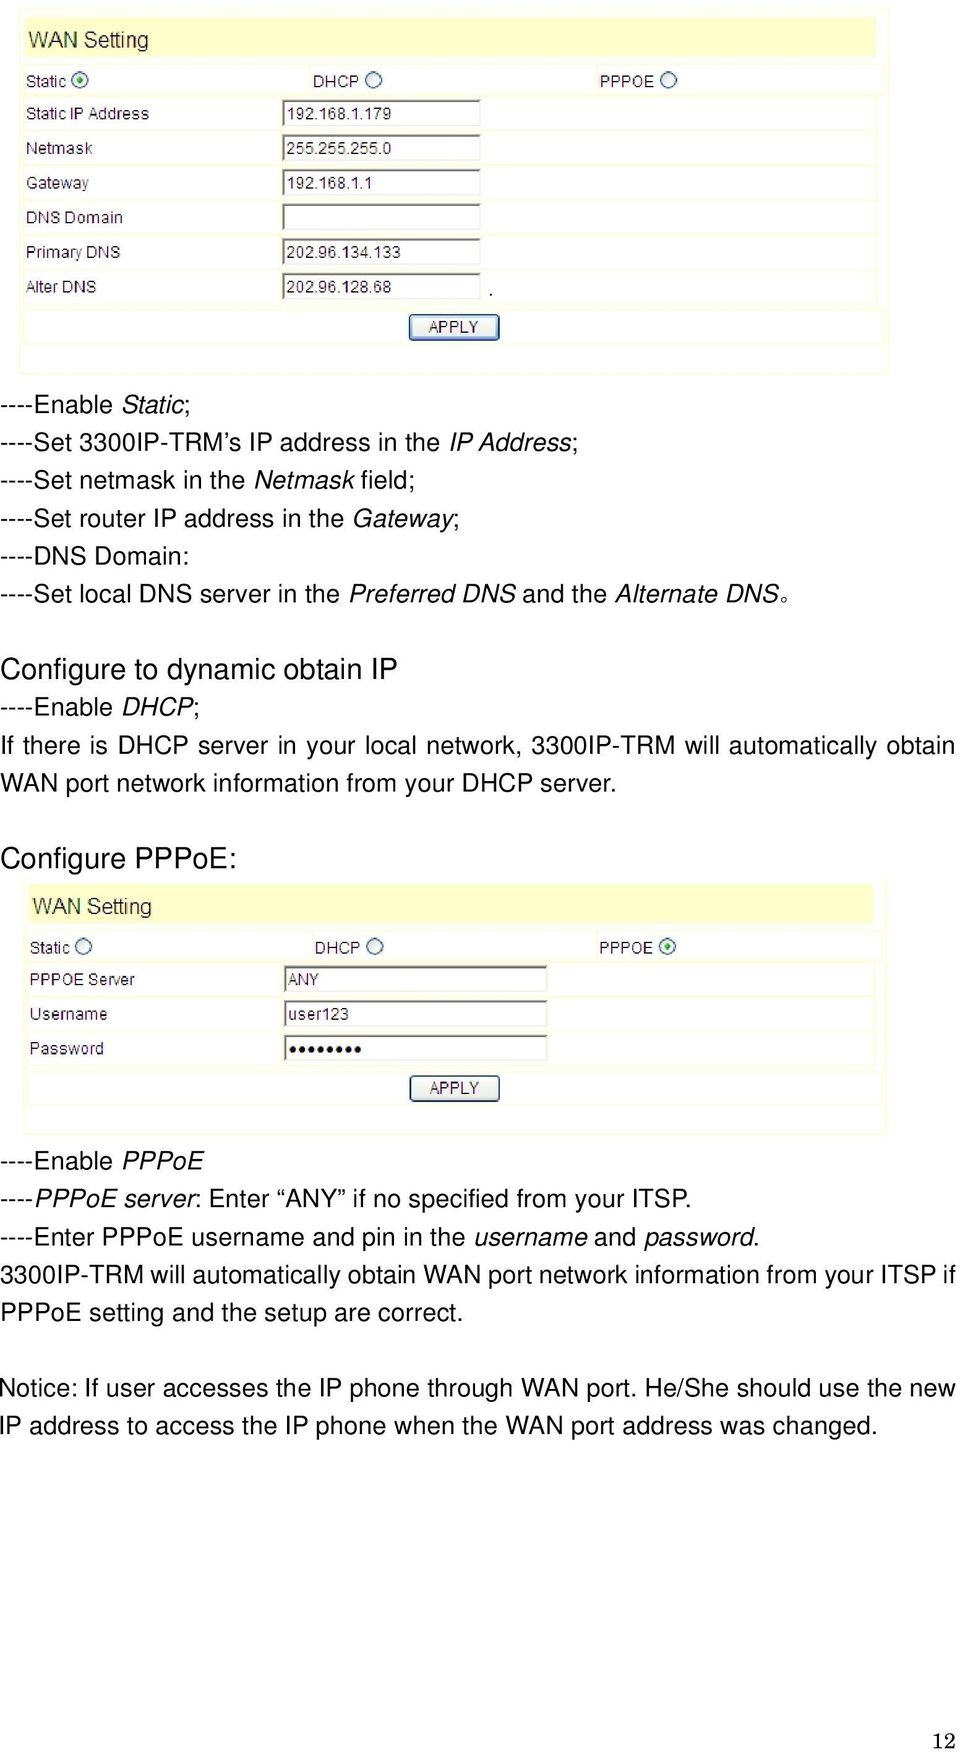 from your DHCP server. Configure PPPoE: ----Enable PPPoE ----PPPoE server: Enter ANY if no specified from your ITSP. ----Enter PPPoE username and pin in the username and password.